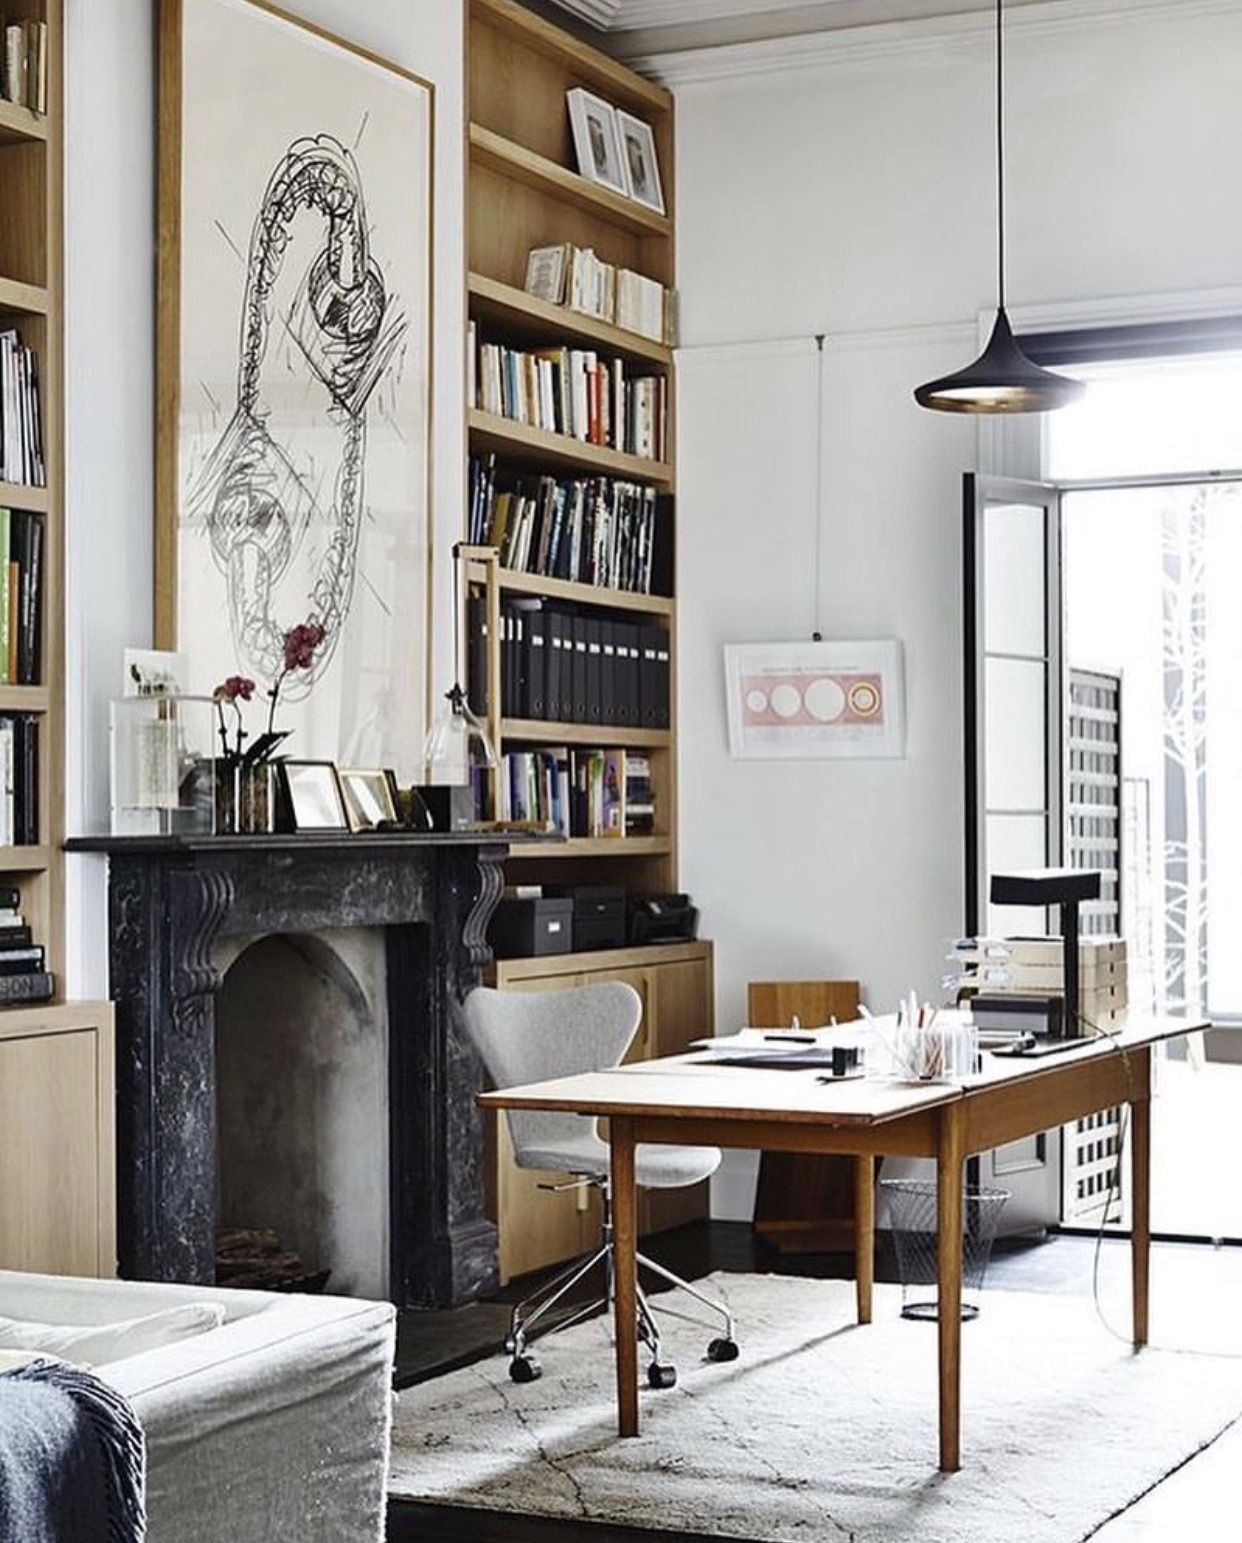 Pin by Esther King on home Pinterest Interiors Spaces and